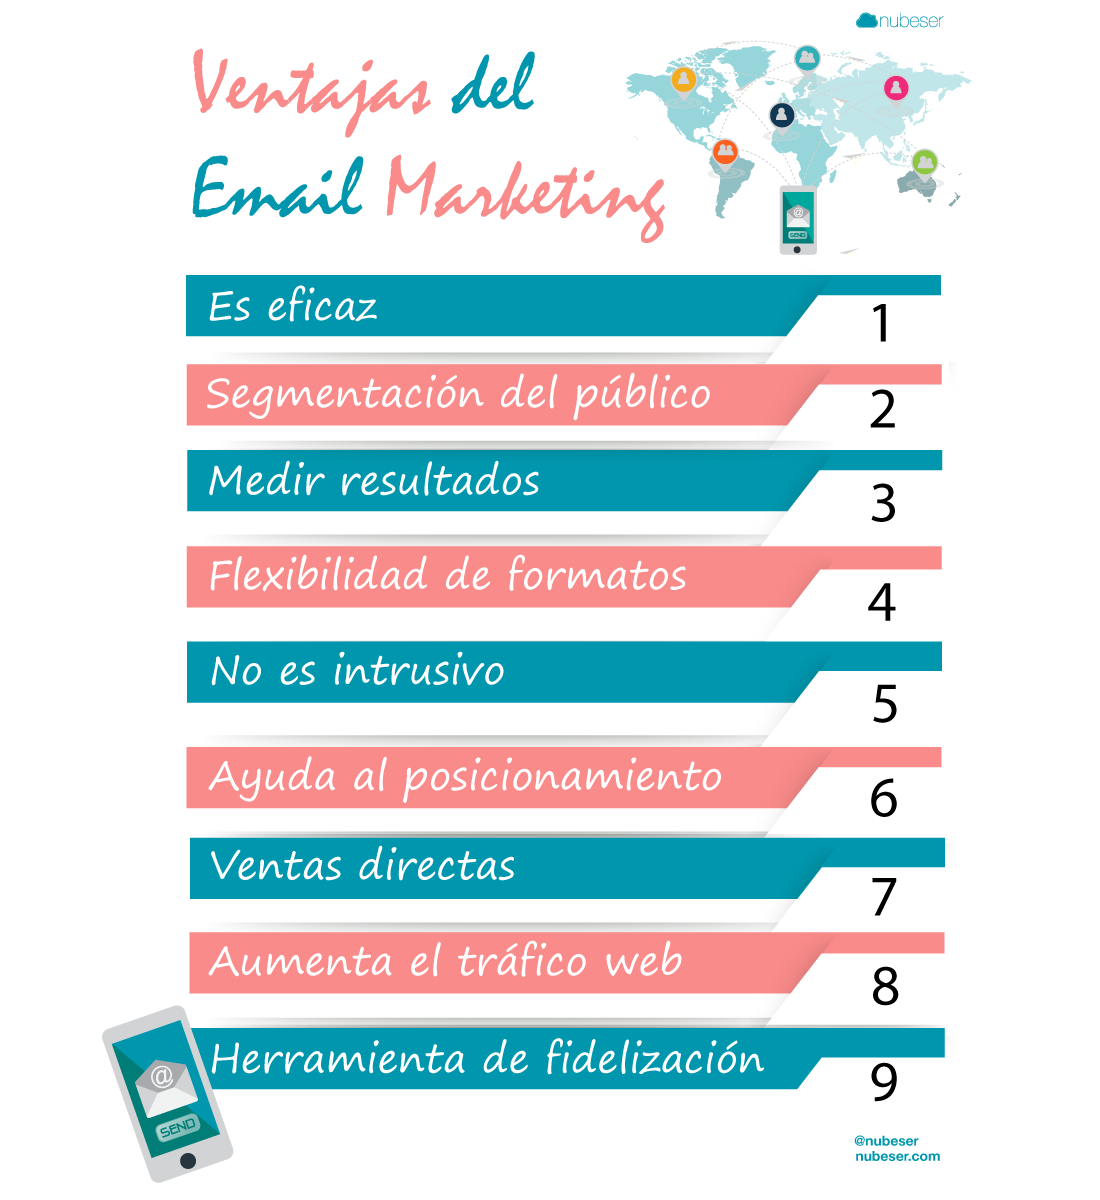 infografía de las ventajas del email marketing para empresas